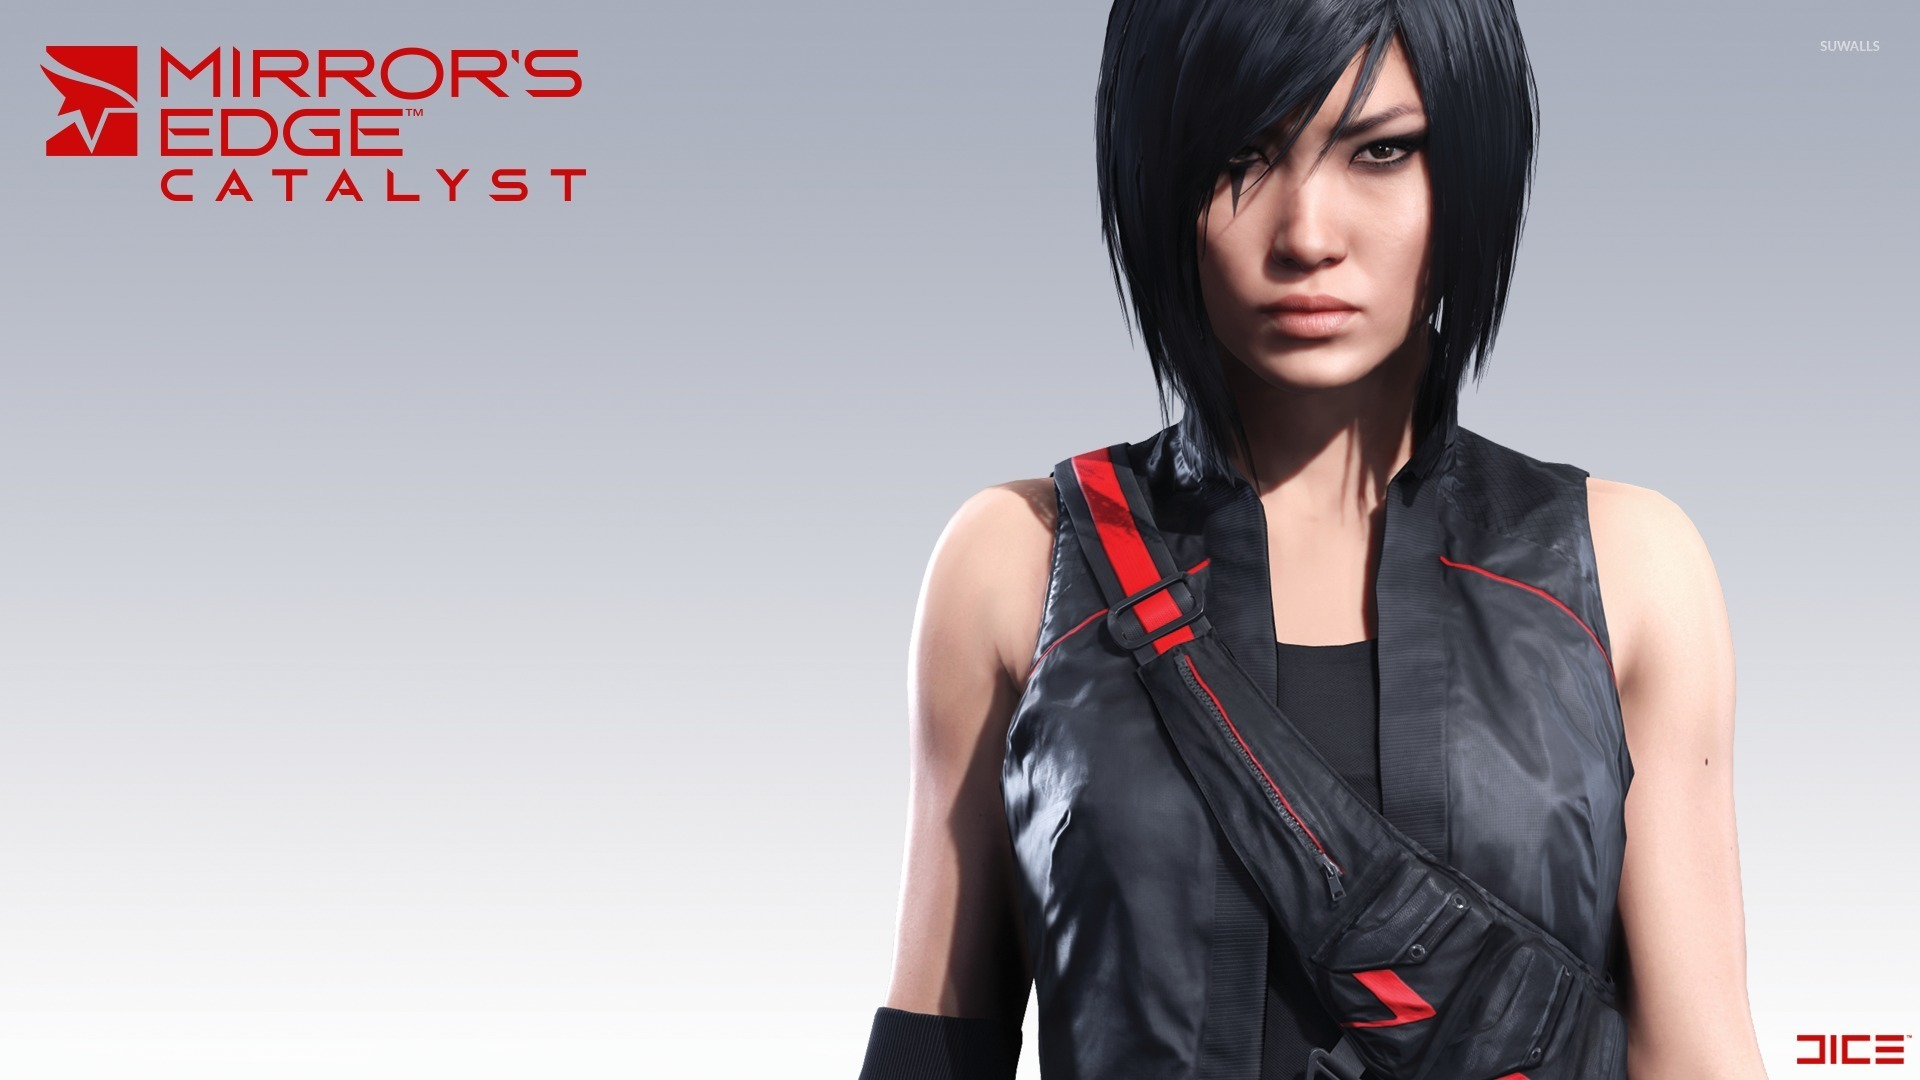 Mirrors-Edge-Catalyst-Why-We-Run-Game-Byte-wallpaper-wpc9007704